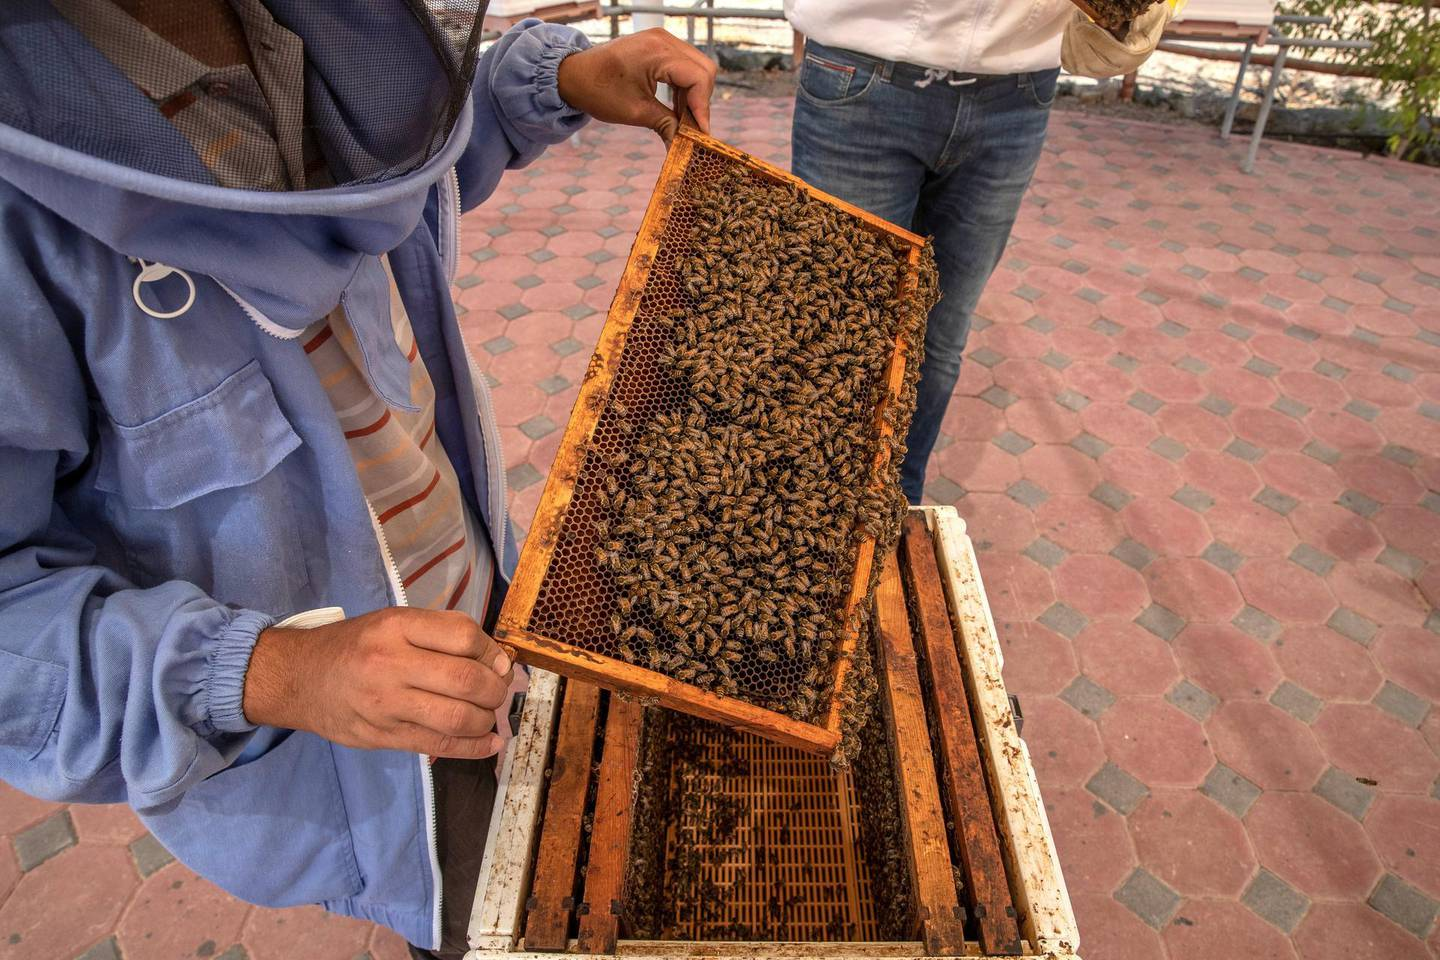 DUBAI, UNITED ARAB EMIRATES. 06 OCTOBER 2020. JA Hatta Fort Hotel has launched a collaboration with the Hatta Honey Bee Discovery Centre to use theyr products in the Food and Beverage menu of the hotel. Mohamed Quertani, Garden Manager, conducts a tour around the sanctuary explain the importance of bees and the different aspects of the farm. (Photo: Antonie Robertson/The National) Journalist: janice Rodriguez. Section: Arts & Life.